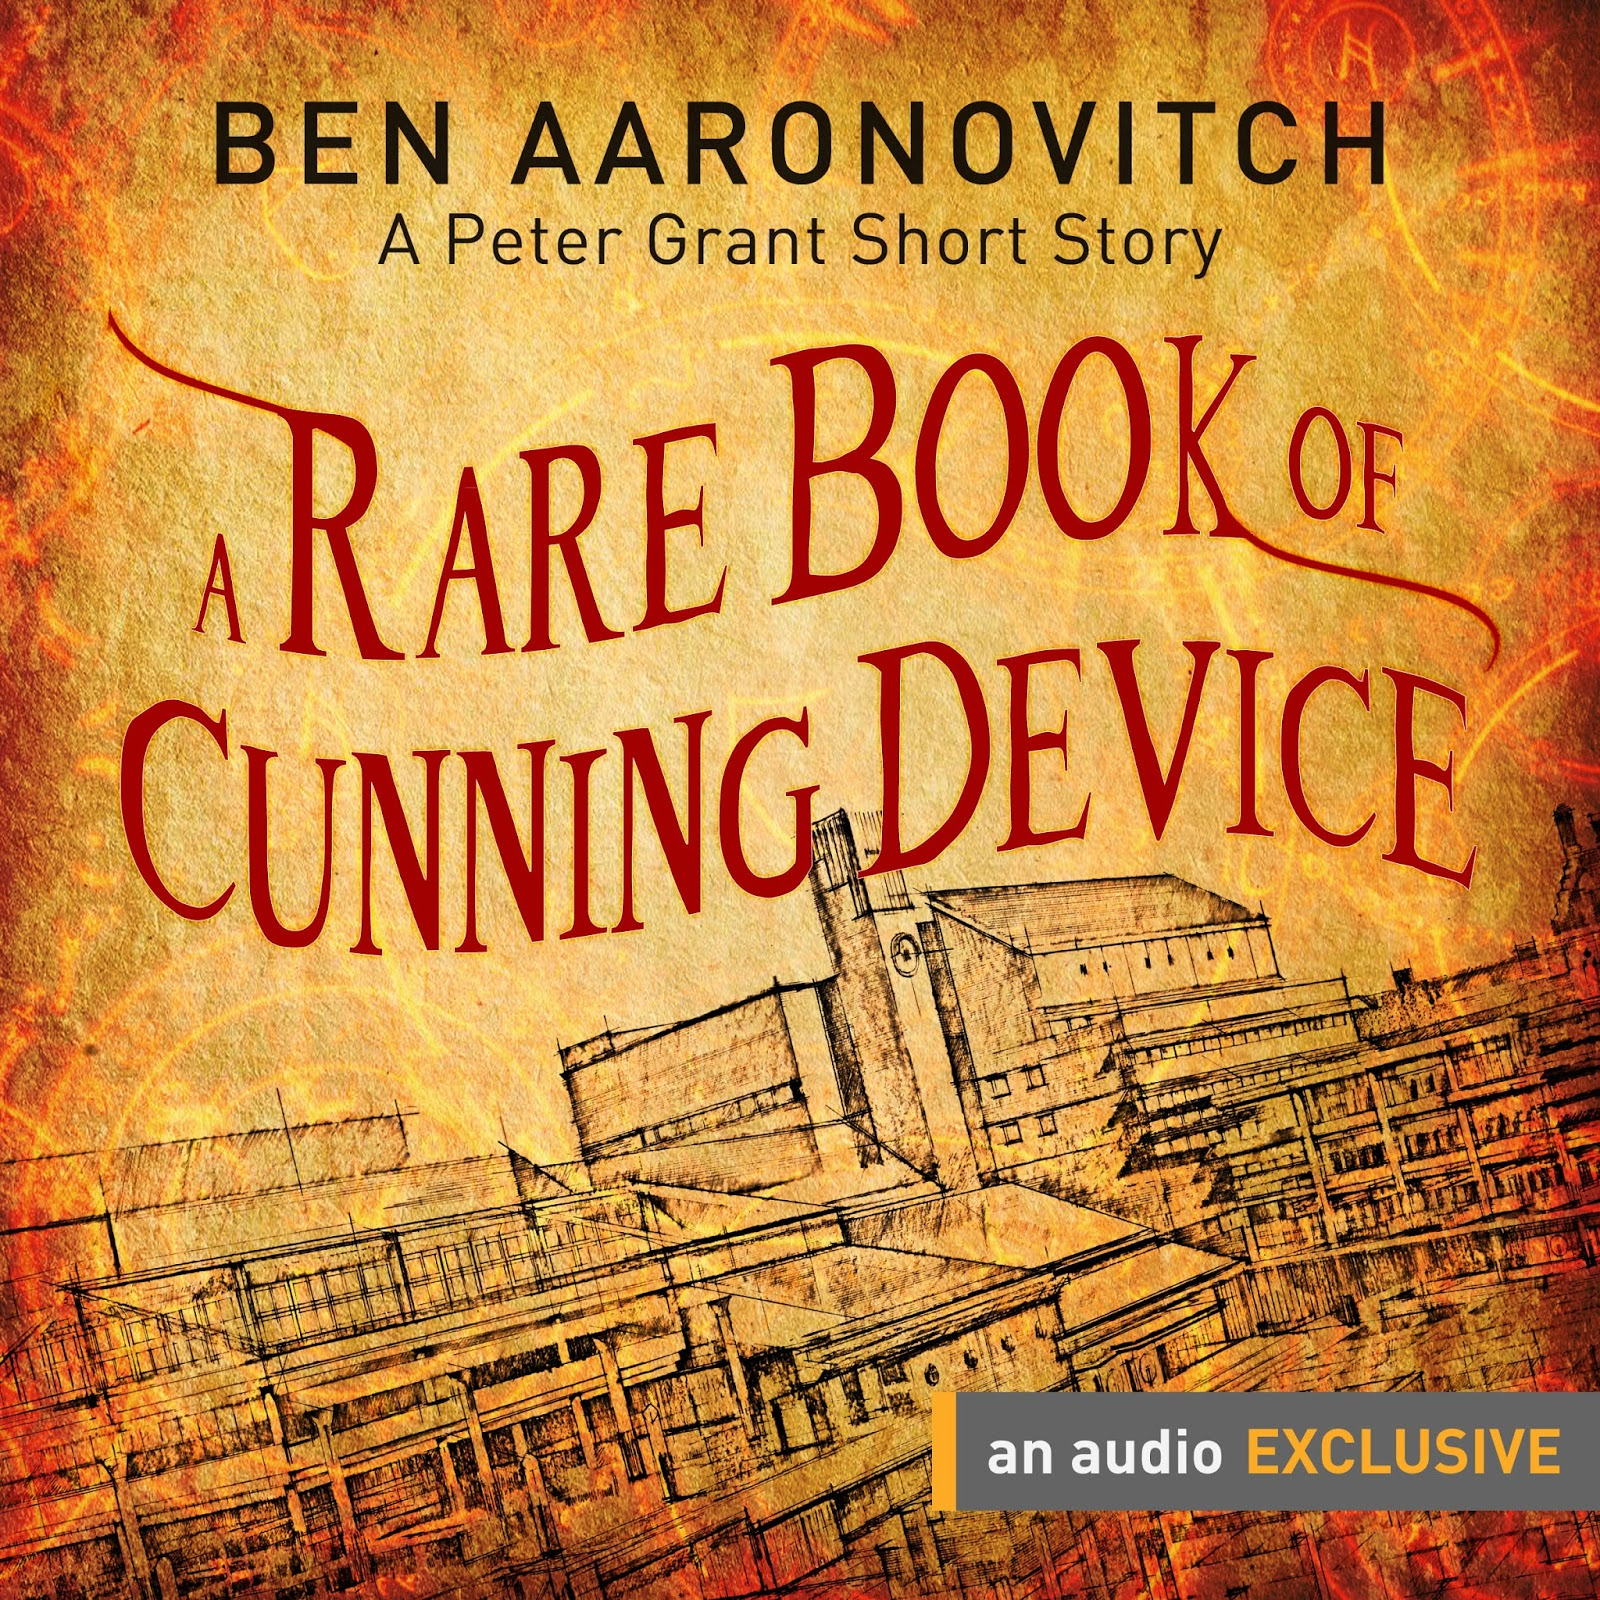 A-Rare-Book-of-Cunning-Device